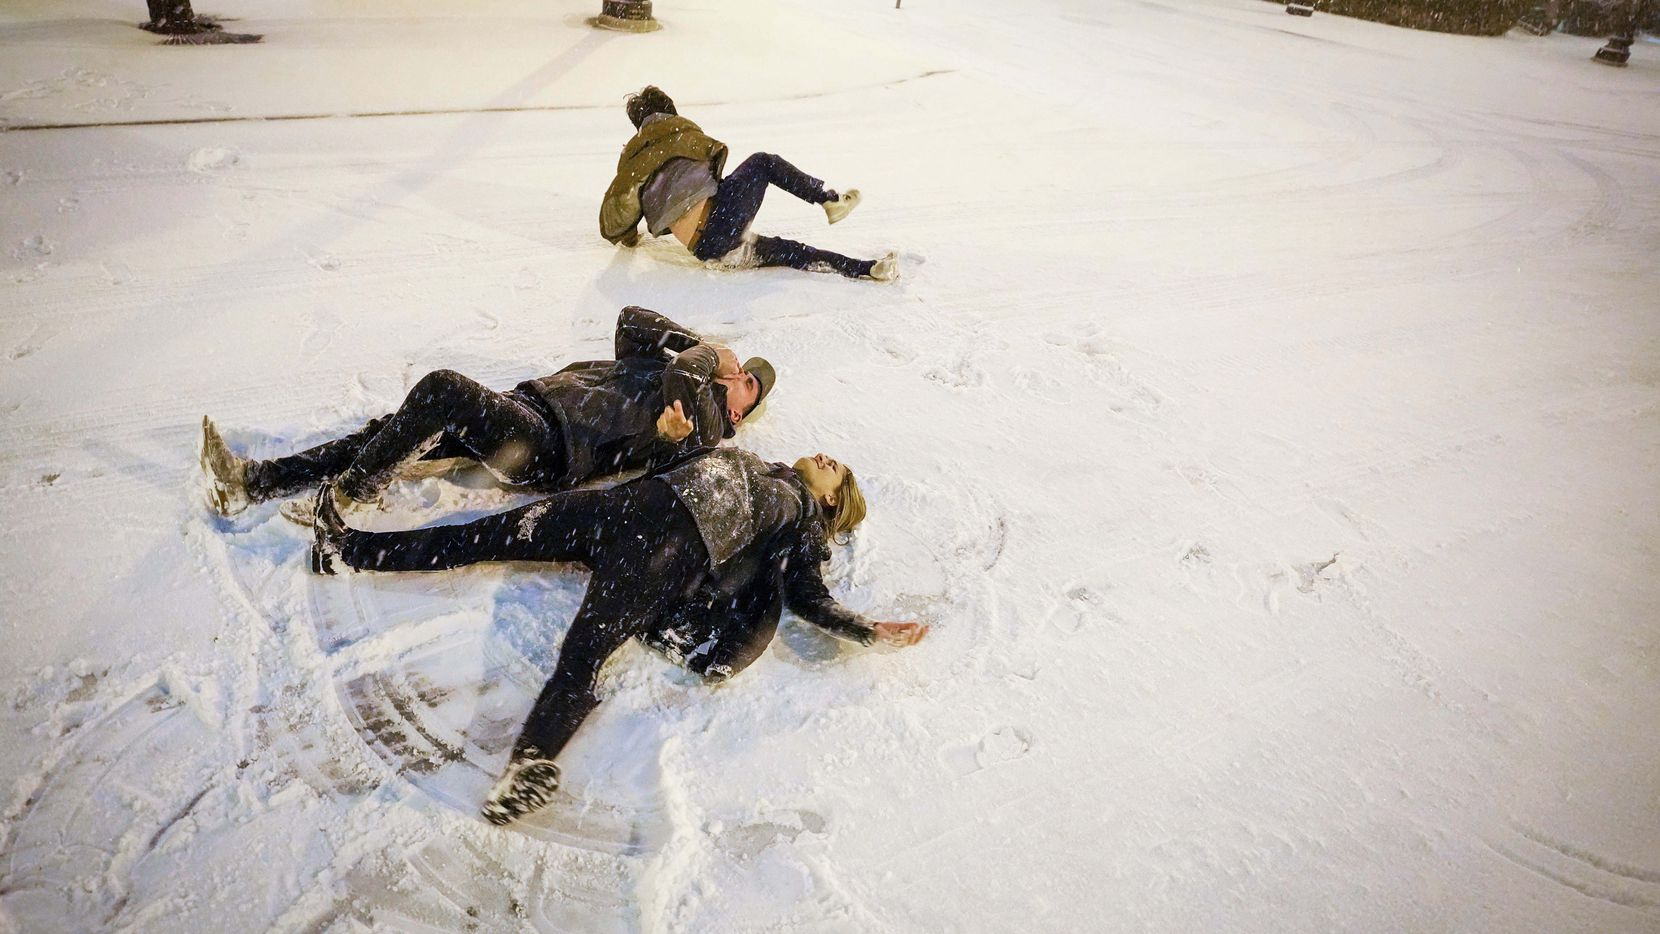 Gabriel Wilke and Gabrielle Rader do snow angles in the middle of Thomas Avenue near Griggs Park as a winter storm brings snow and freezing temperatures to North Texas on Feb. 14, 2021, in Dallas.  A winter storm watch has been issued for all of North Texas, including Dallas, Denton, Collin and Tarrant counties and will be in effect from late Saturday through Monday afternoon.